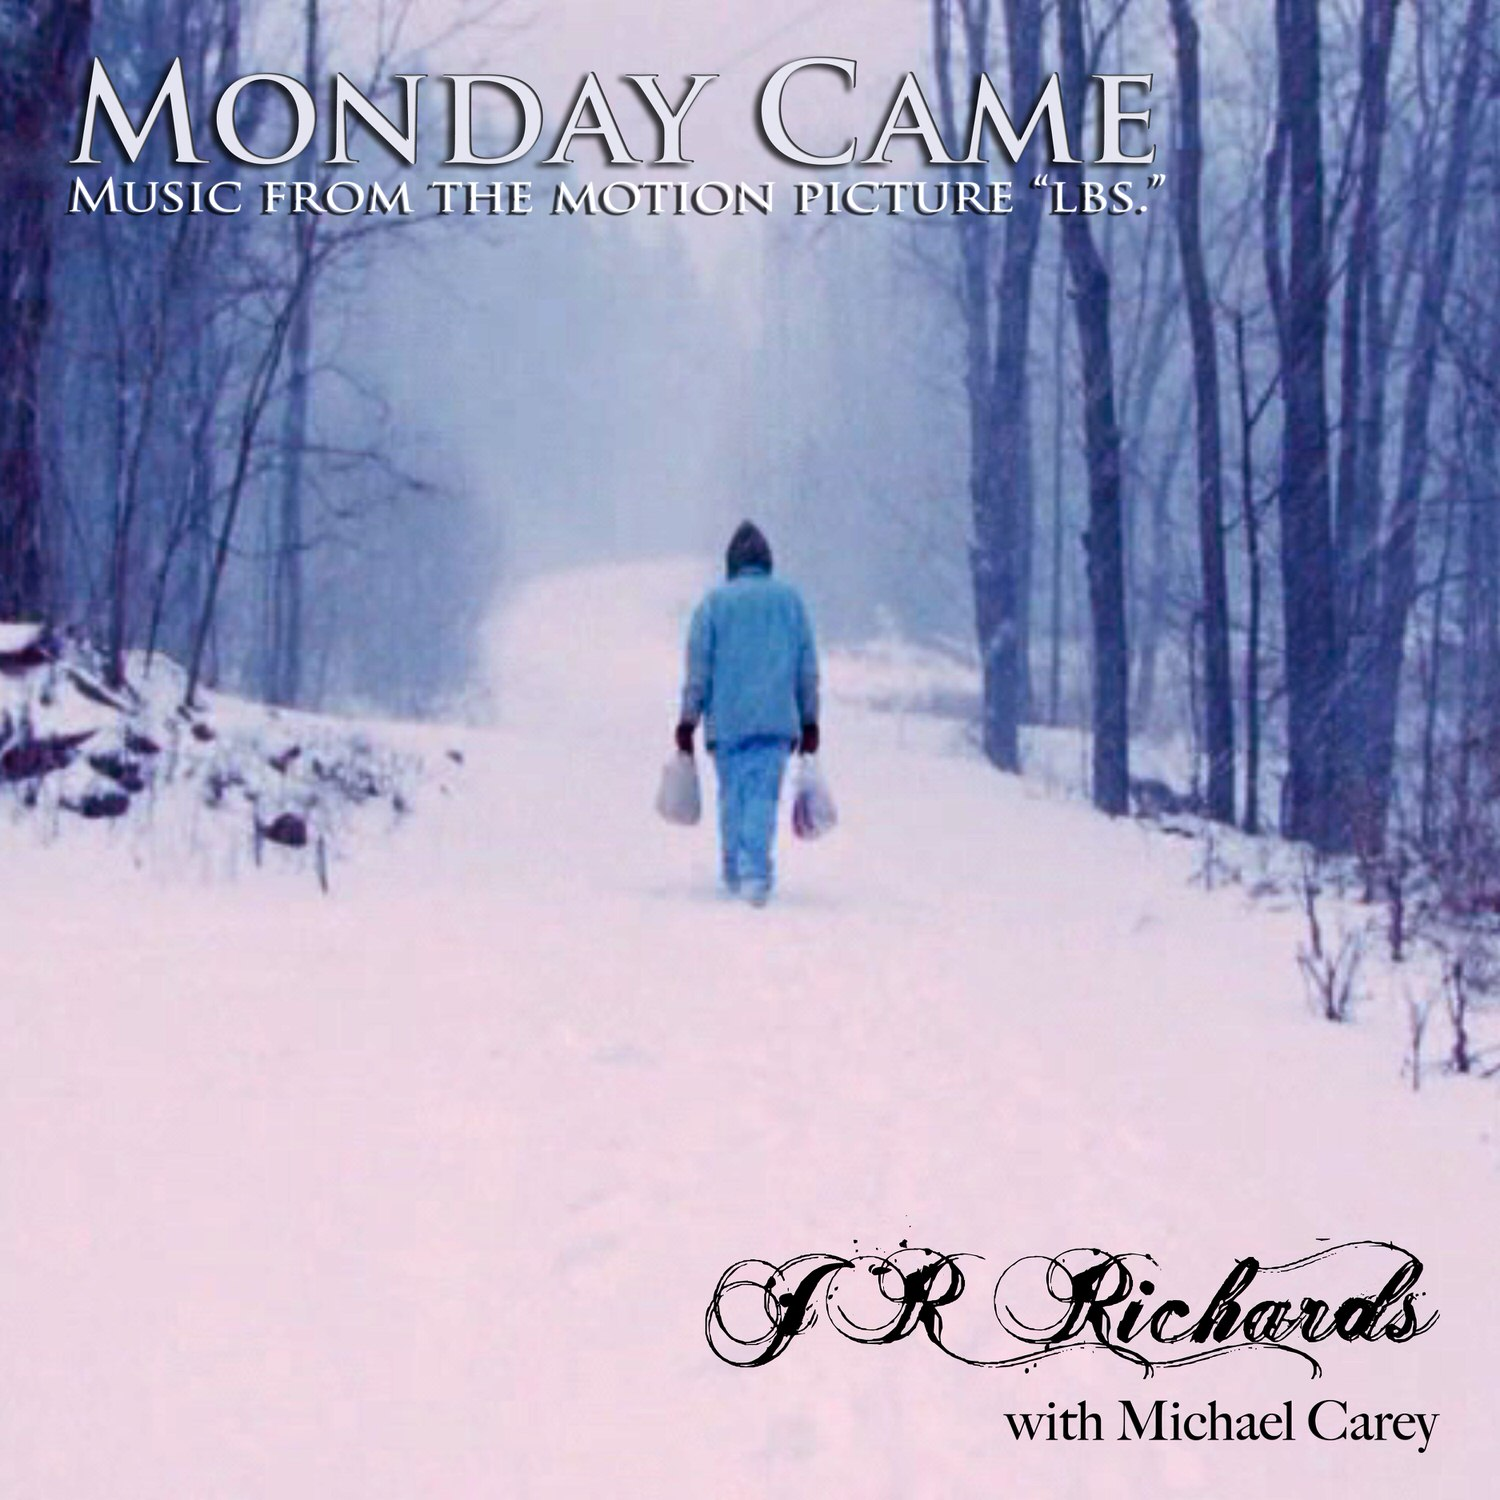 J.R. RIchards-Monday Came-cover art.jpg